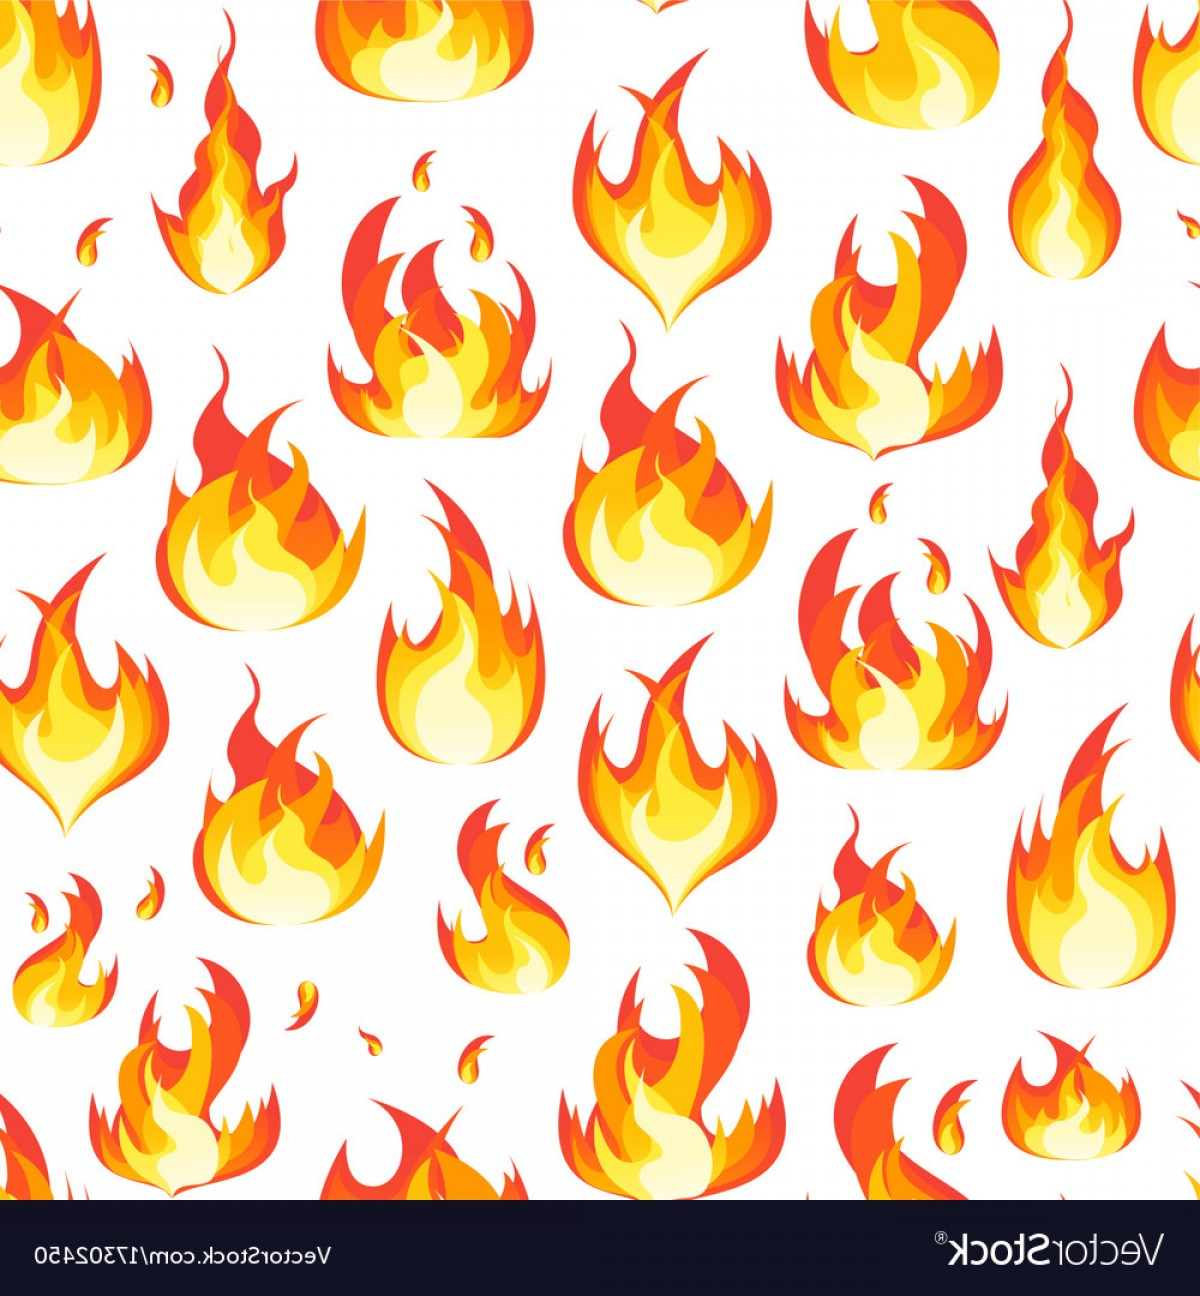 Cartoon Fire Flames Vector: Cartoon Fire Flames Background Pattern On A White Vector